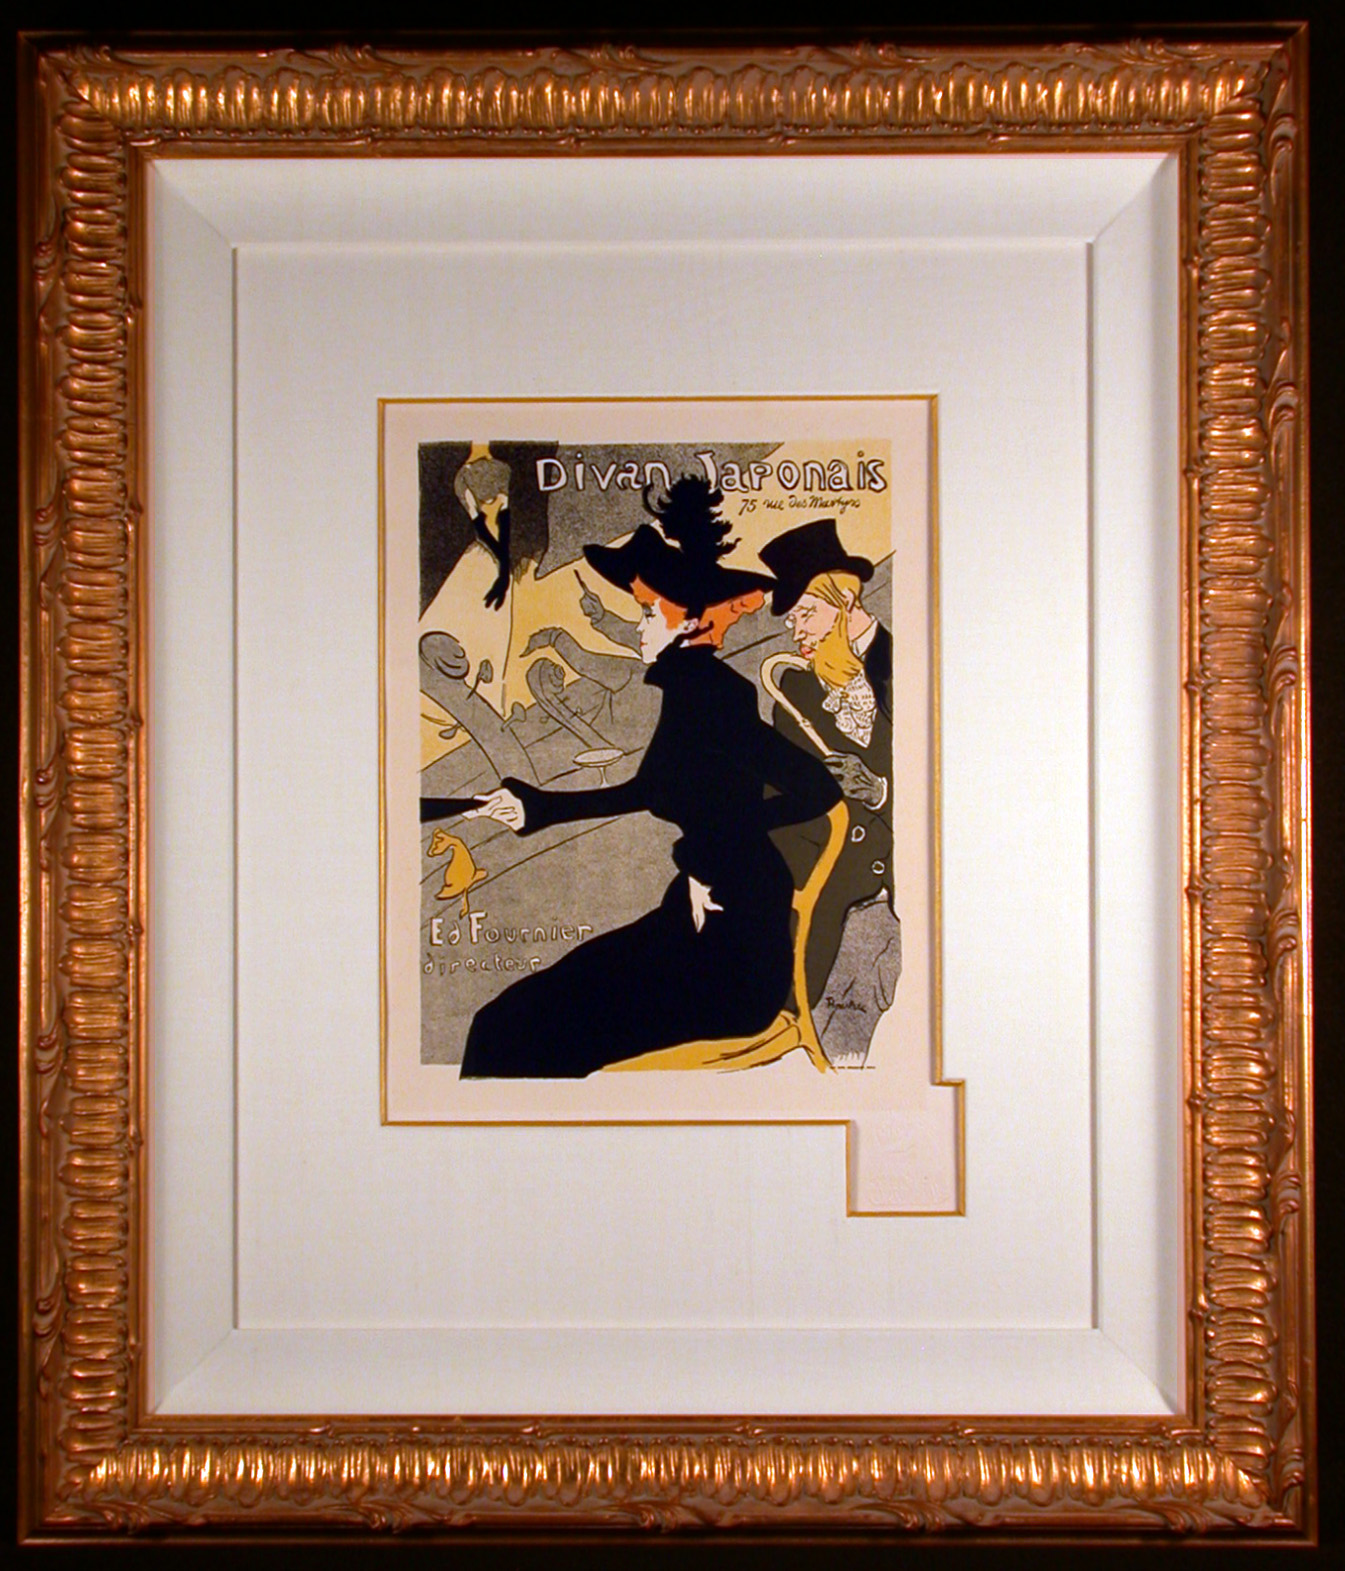 divan japonais 1896 color lithograph after toulouse lautrec j d smith fine art. Black Bedroom Furniture Sets. Home Design Ideas